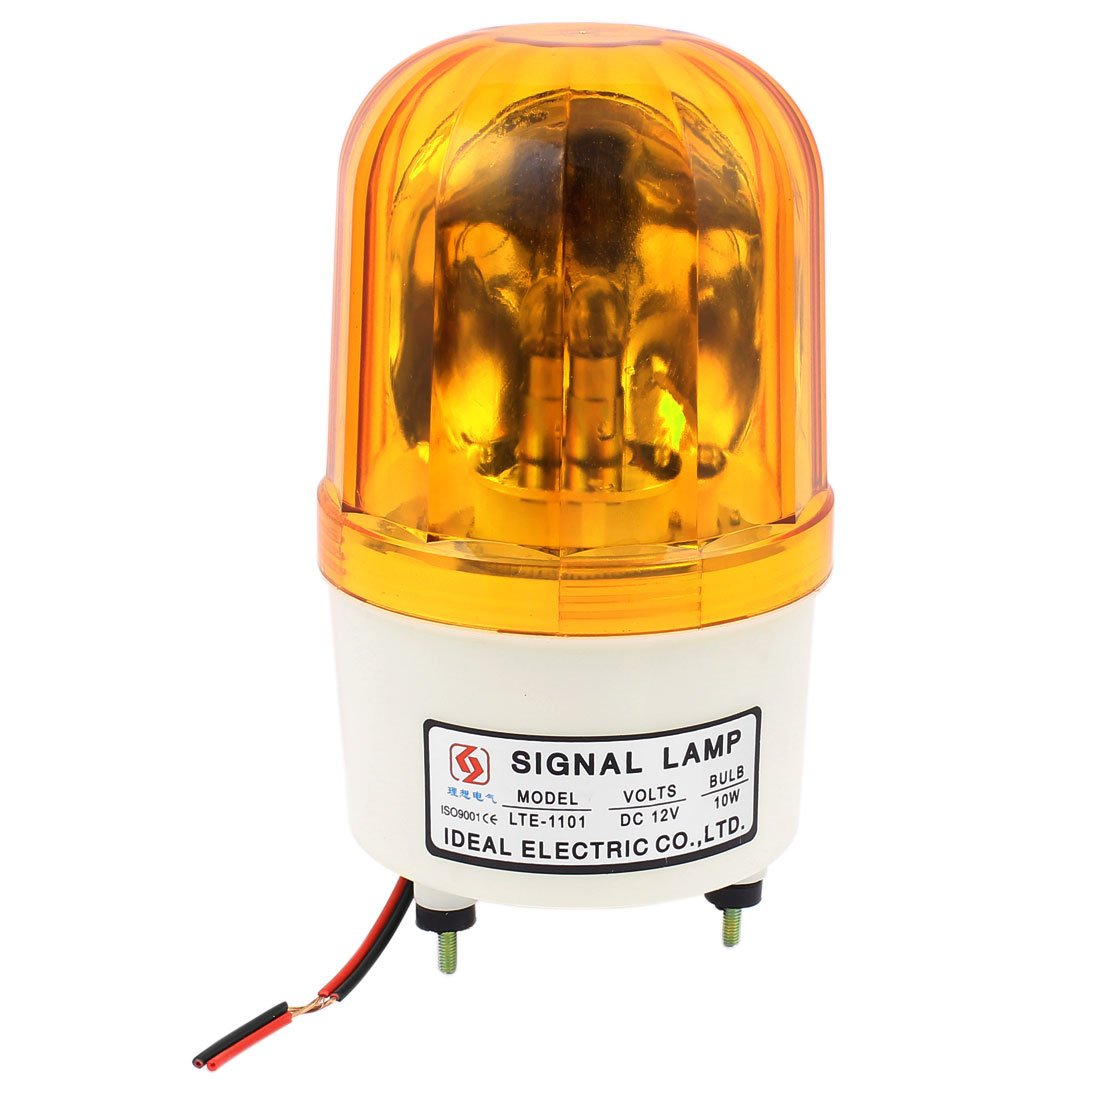 uxcell LTE-1101 DC 12V 10W Industrial Yellow Rotary Lamp Warning Signal Light